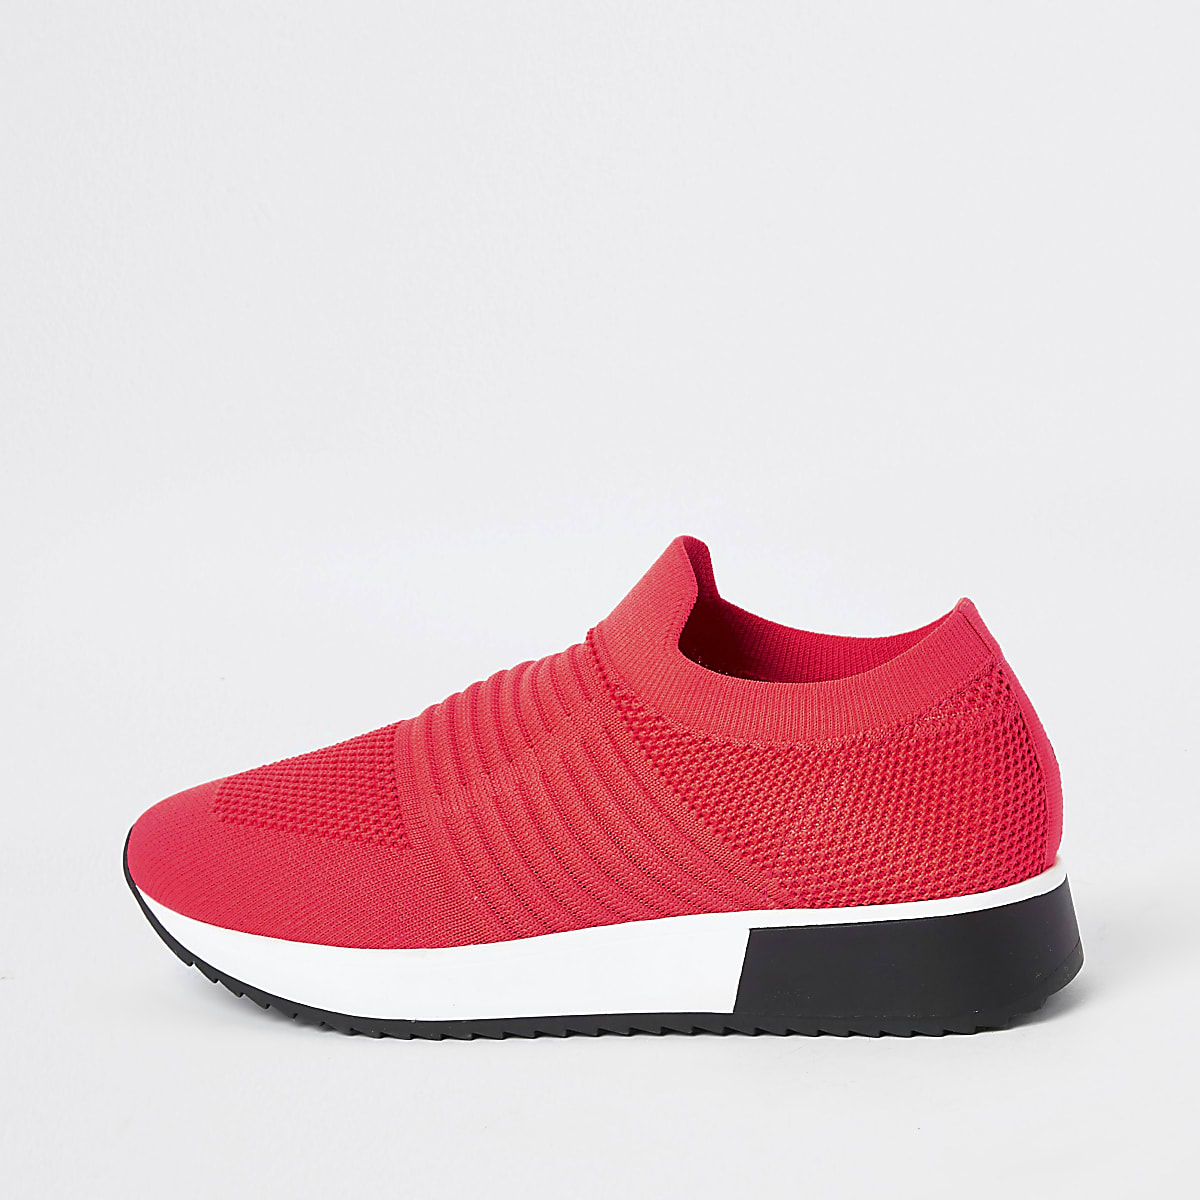 Neon coral knitted runner sneakers